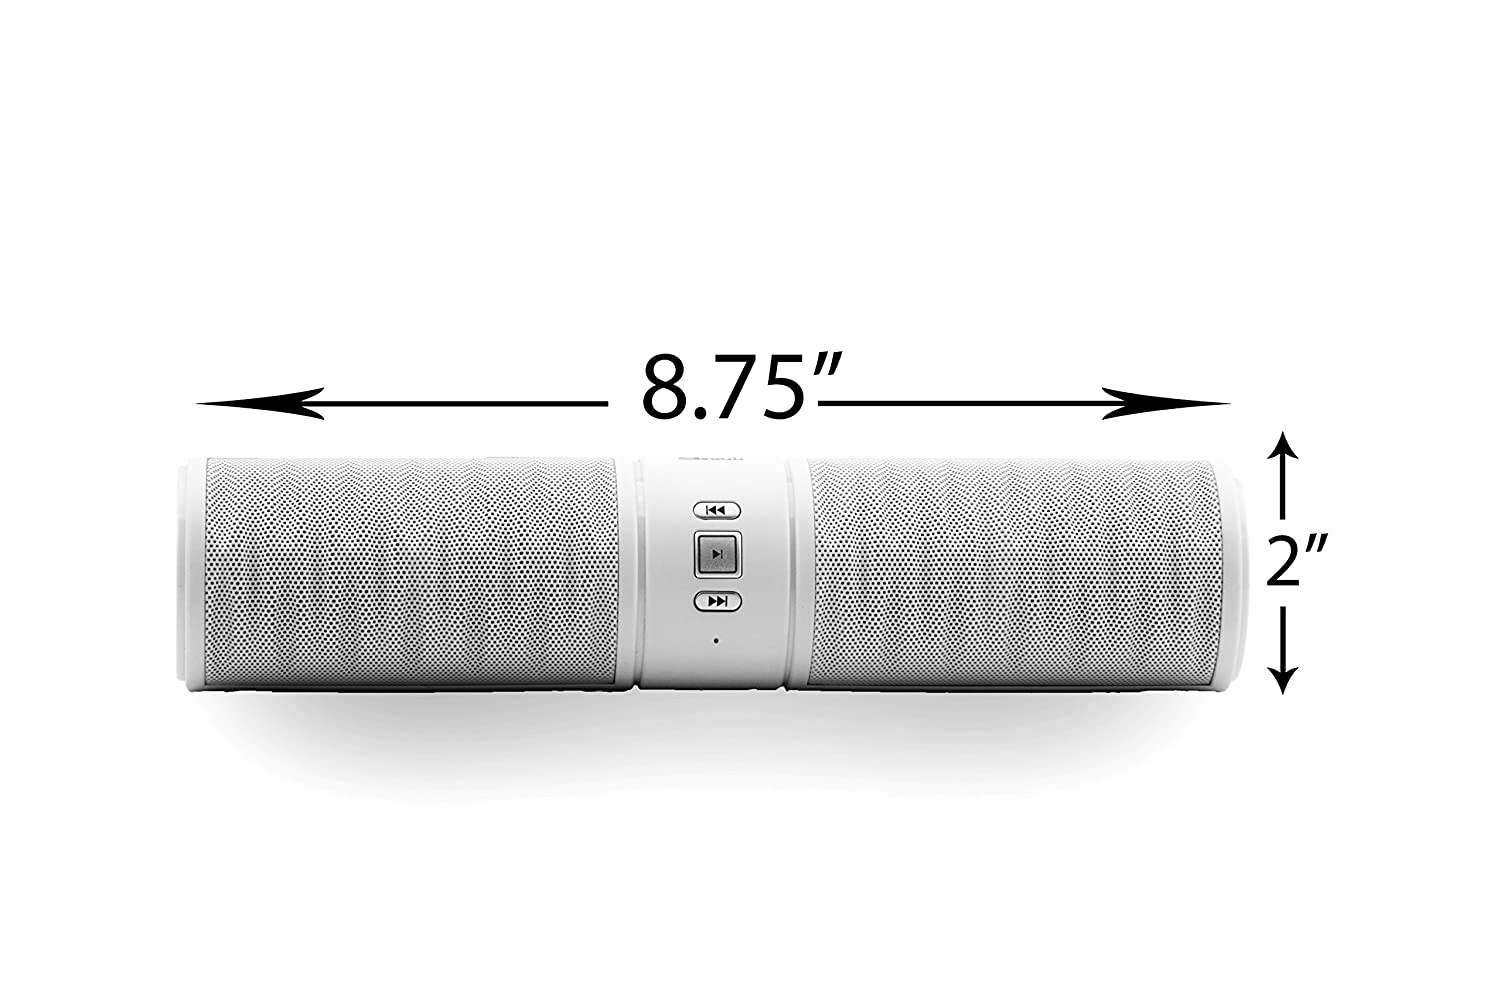 Фото Wireless Bluetooth Speaker, Roll (White) Ultra-portable , Powerful Sound with Build in Microphone, Works for Iphone 4, 4s, 5, 5s, 6, 6 Plus, Ipad Mini, Ipad 4/3/2, Itouch, Blackberry, Nexus, Samsung, Htc, Lg and Other Smart Phones, Tablets and Mp3 Player стилус other iphone 5 5s 6 ipad mini 3 4 eg0616